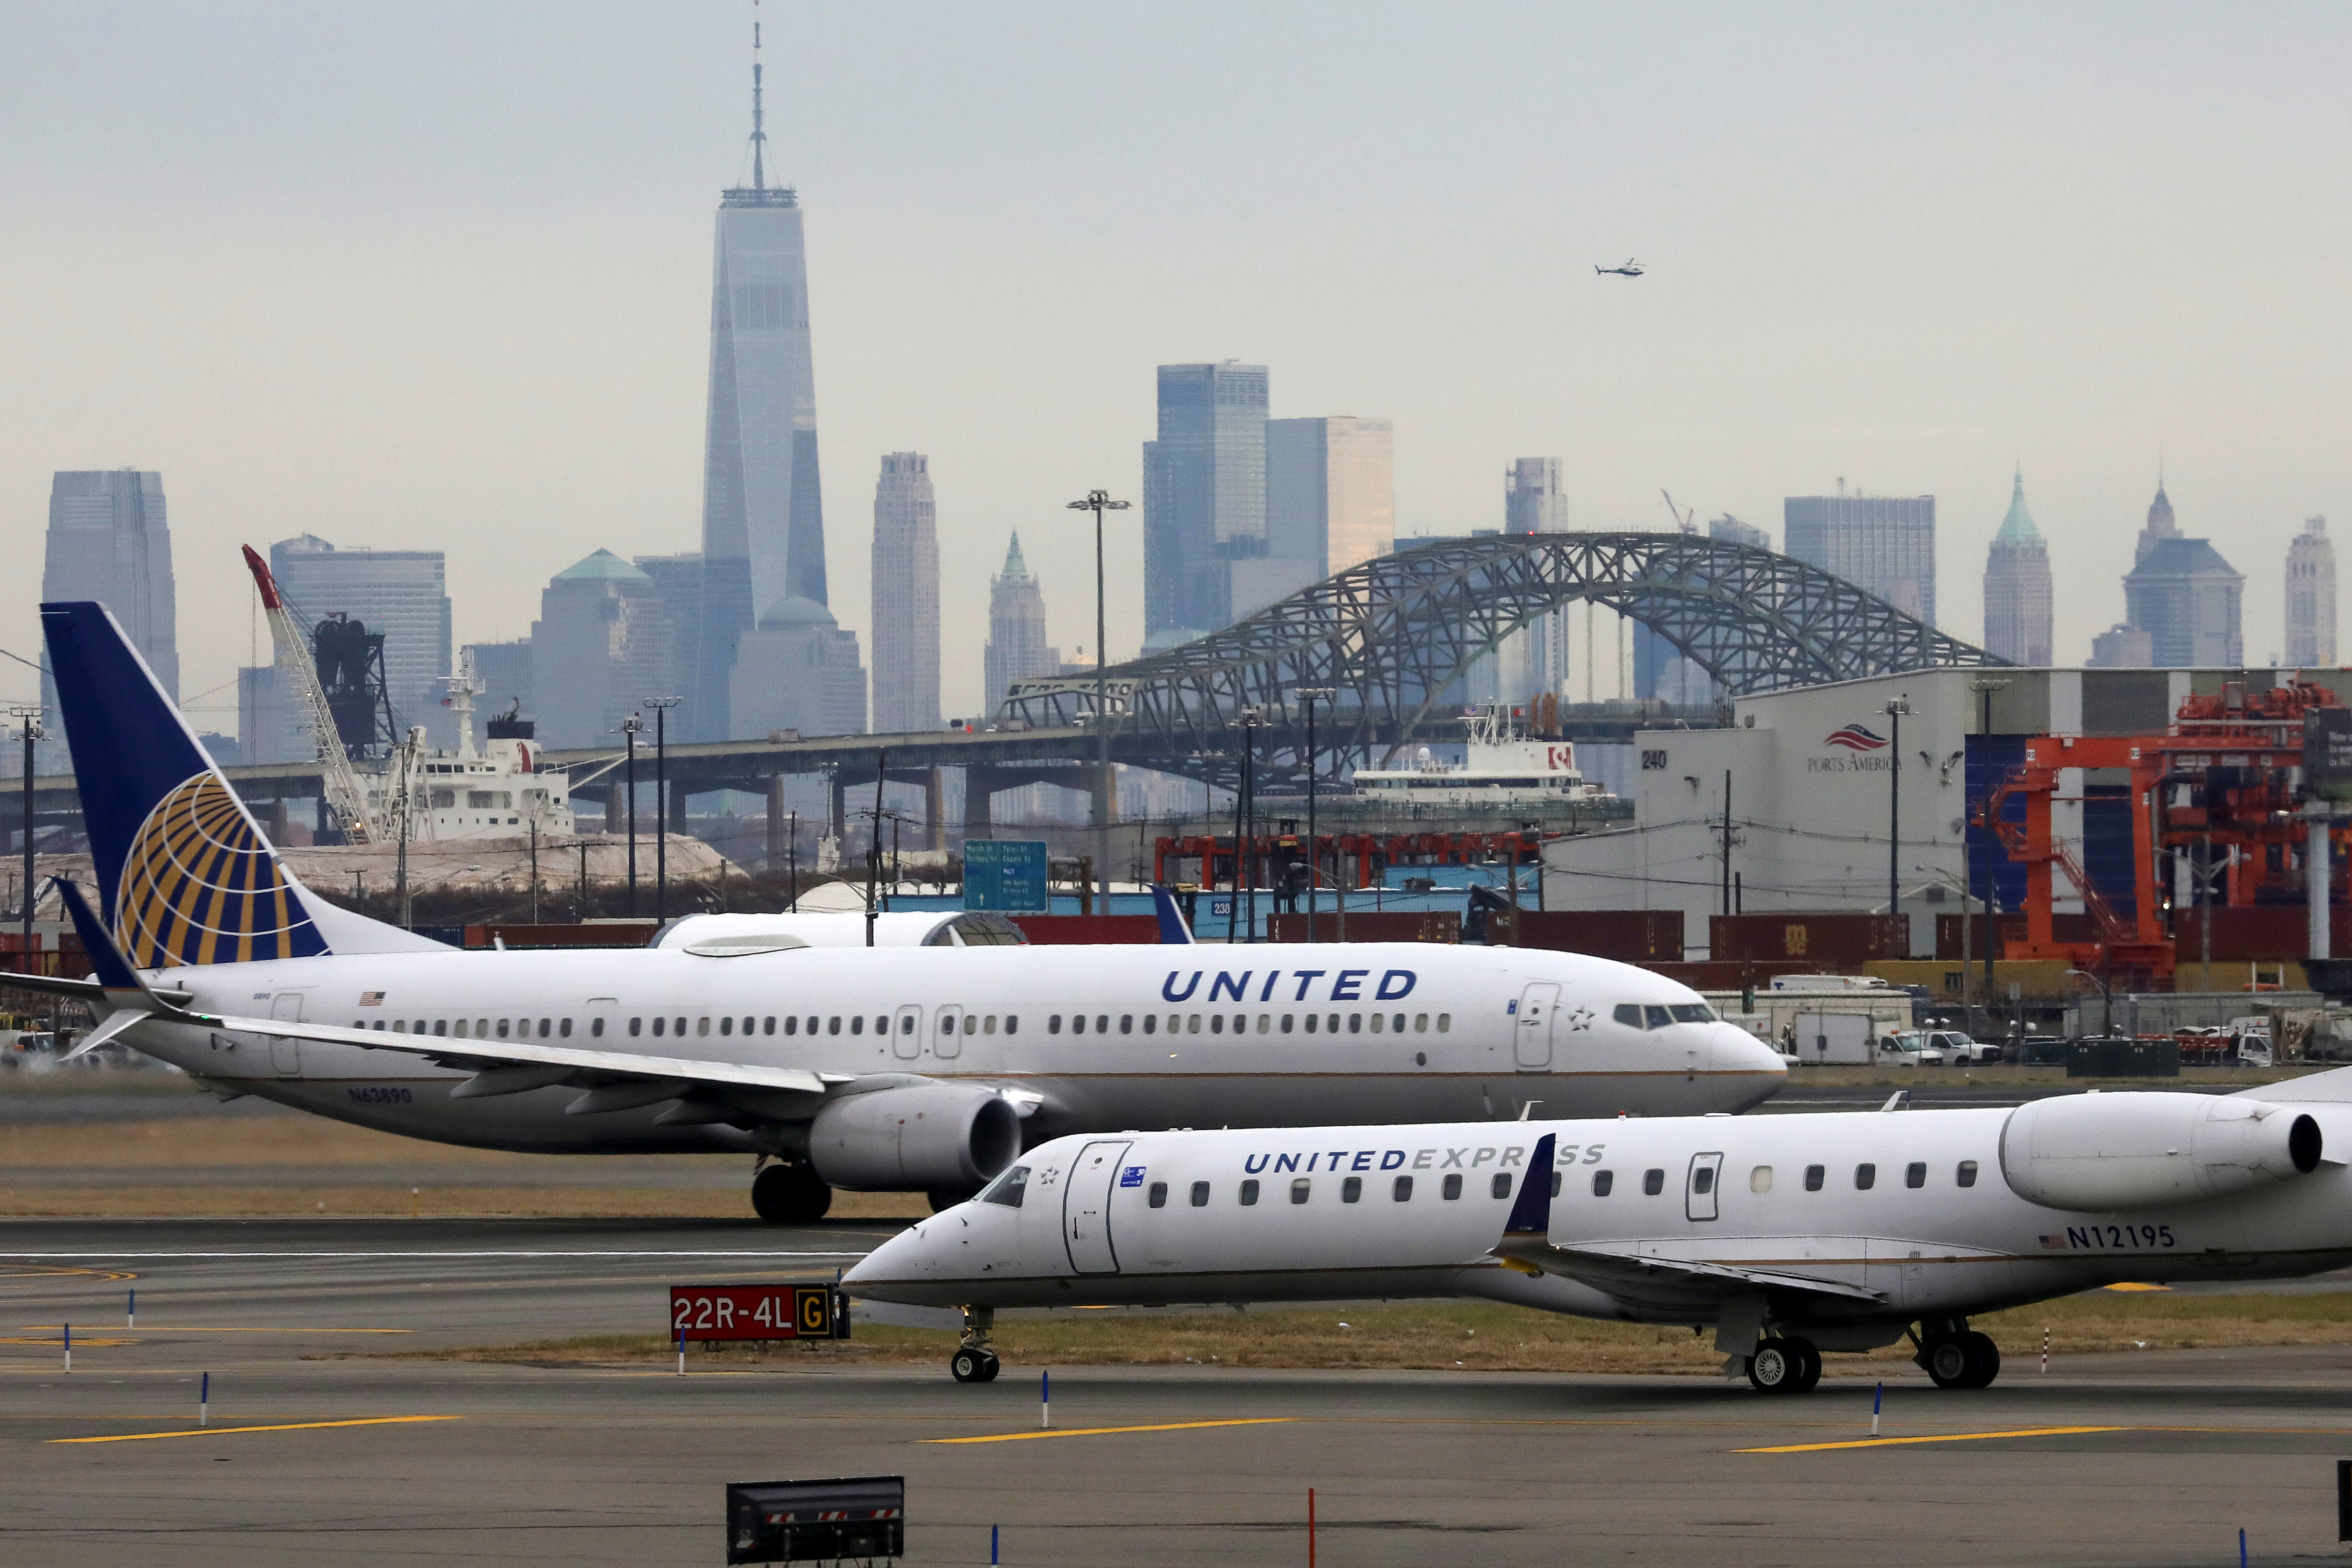 United Airlines passenger jets taxi with New York City as a backdrop, at Newark Liberty International Airport, New Jersey, U.S. December 6, 2019. REUTERS/Chris Helgren